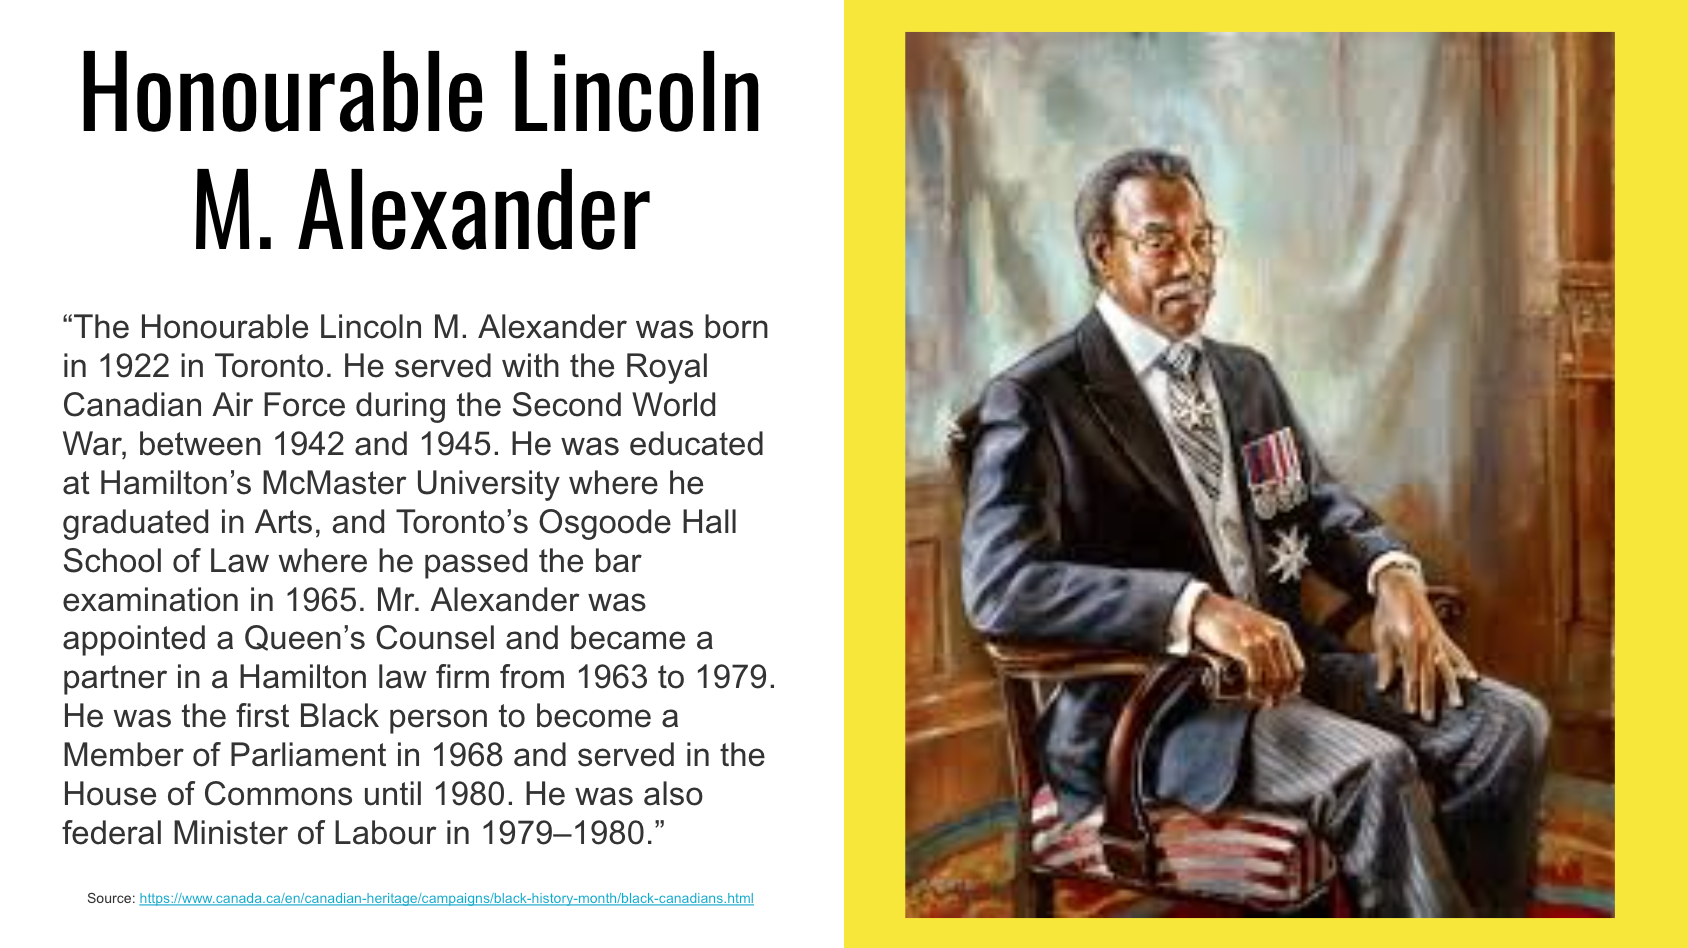 Honorable Lincoln M. Alexander